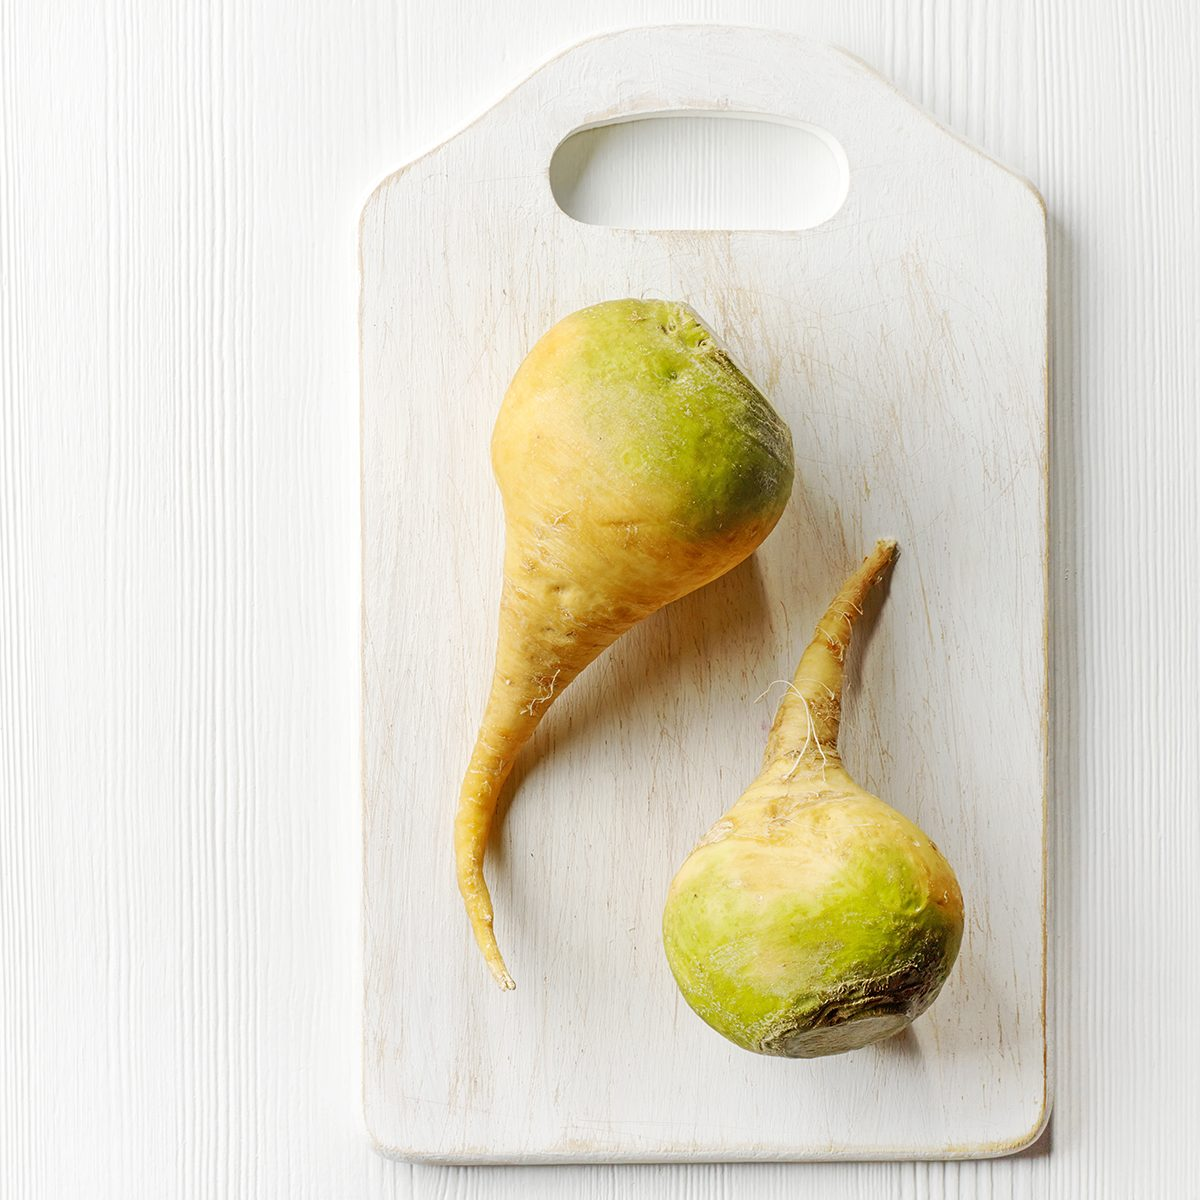 raw rutabaga on white cutting board